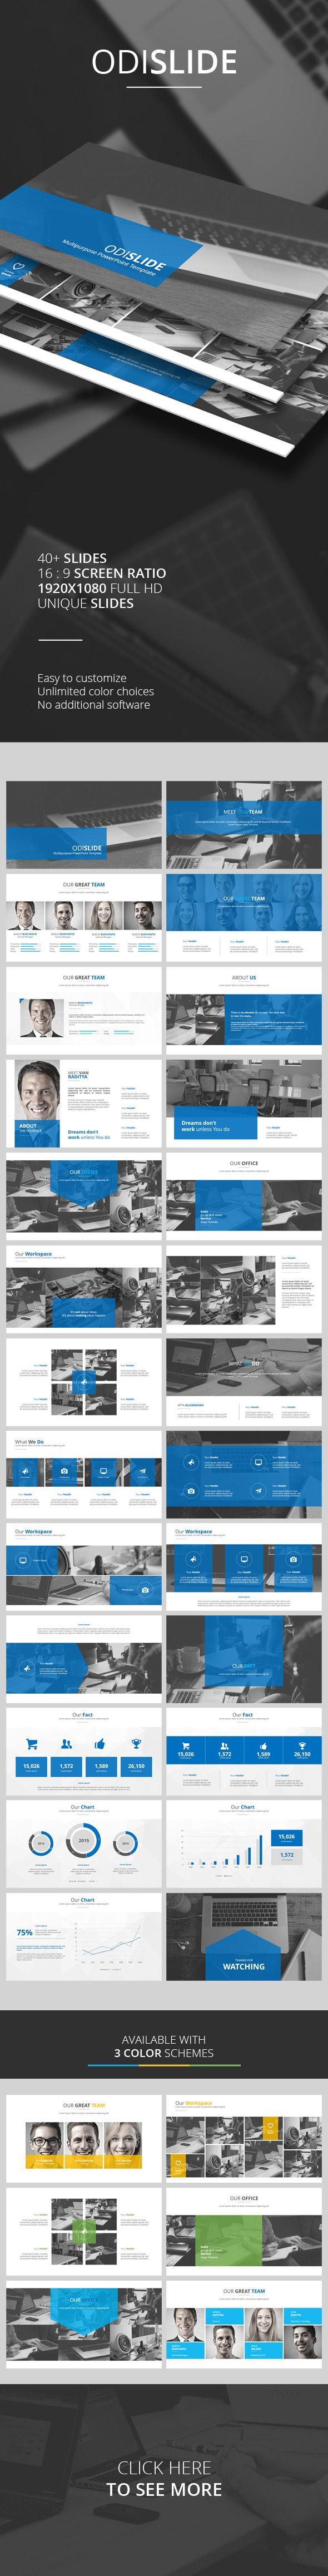 Odislide PowerPoint Template (PowerPoint Templates)